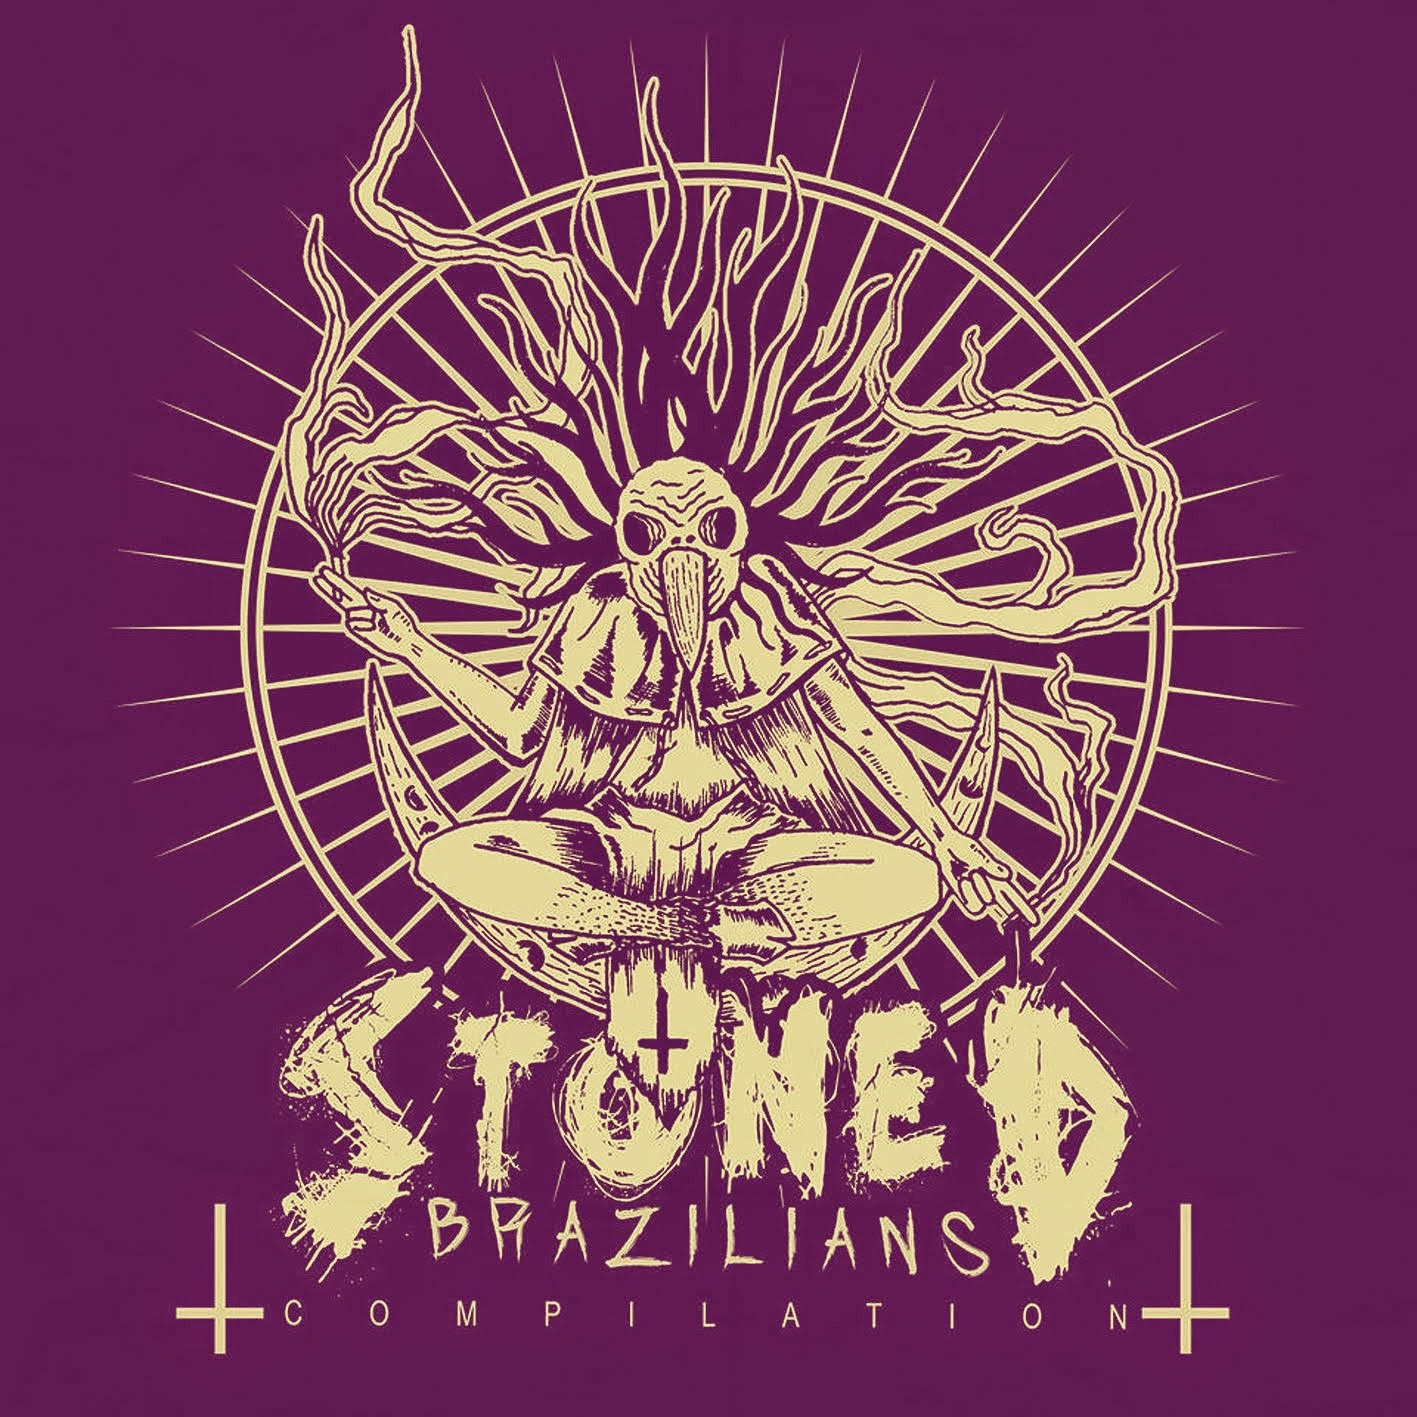 Stoned Brazilians Compilation (cliquem na capa e façam o download)